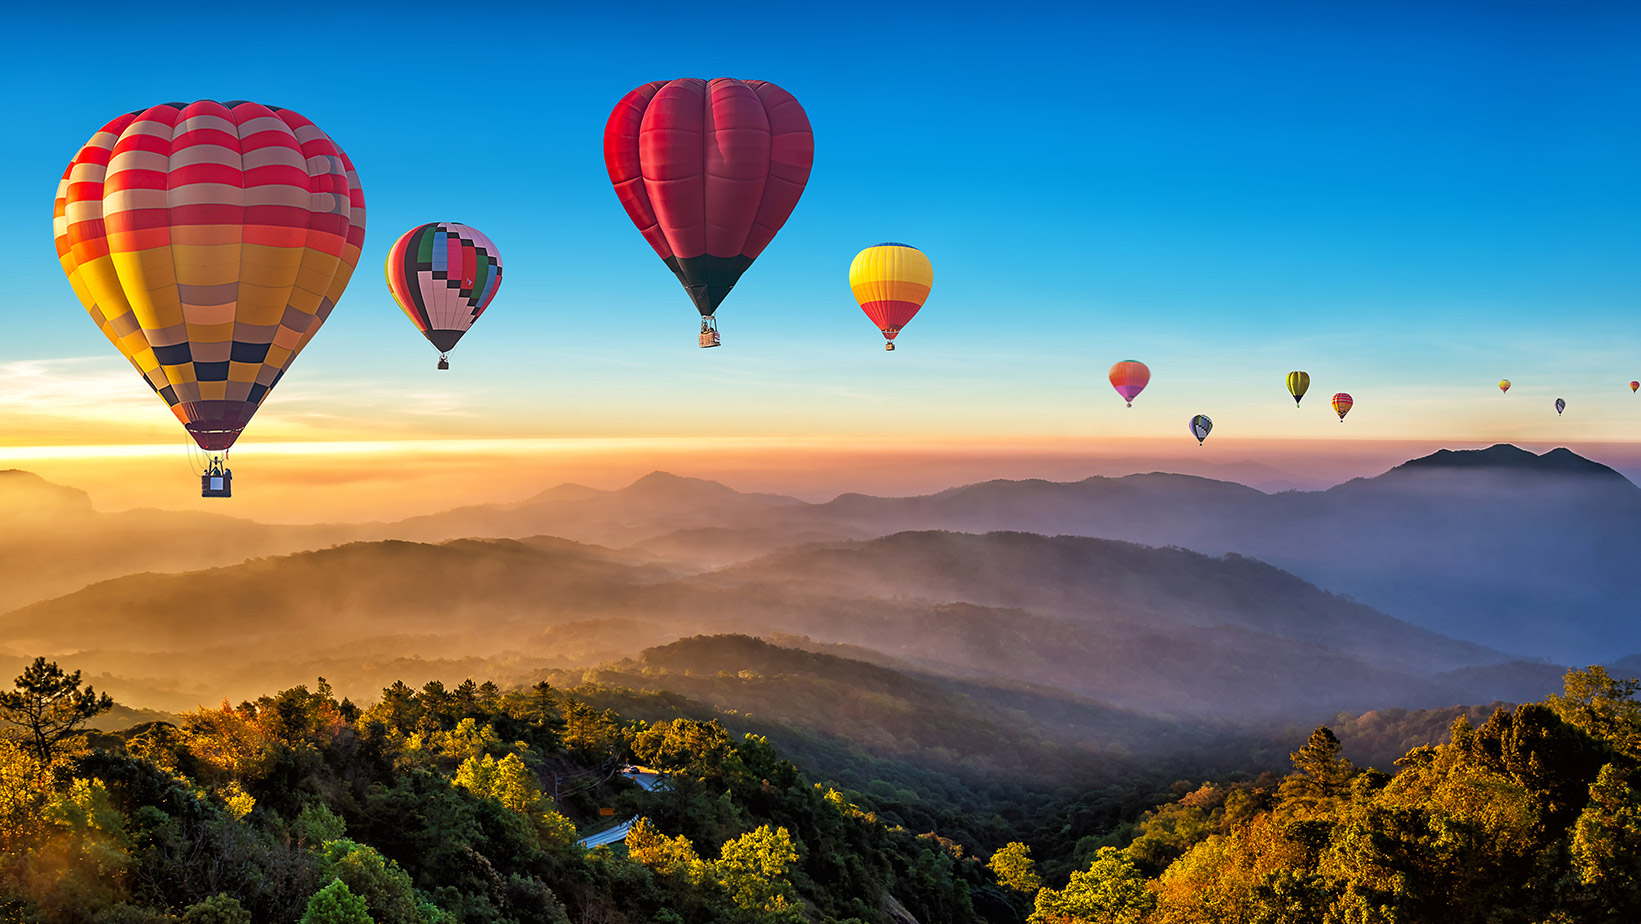 Balloons flying over a mountain range